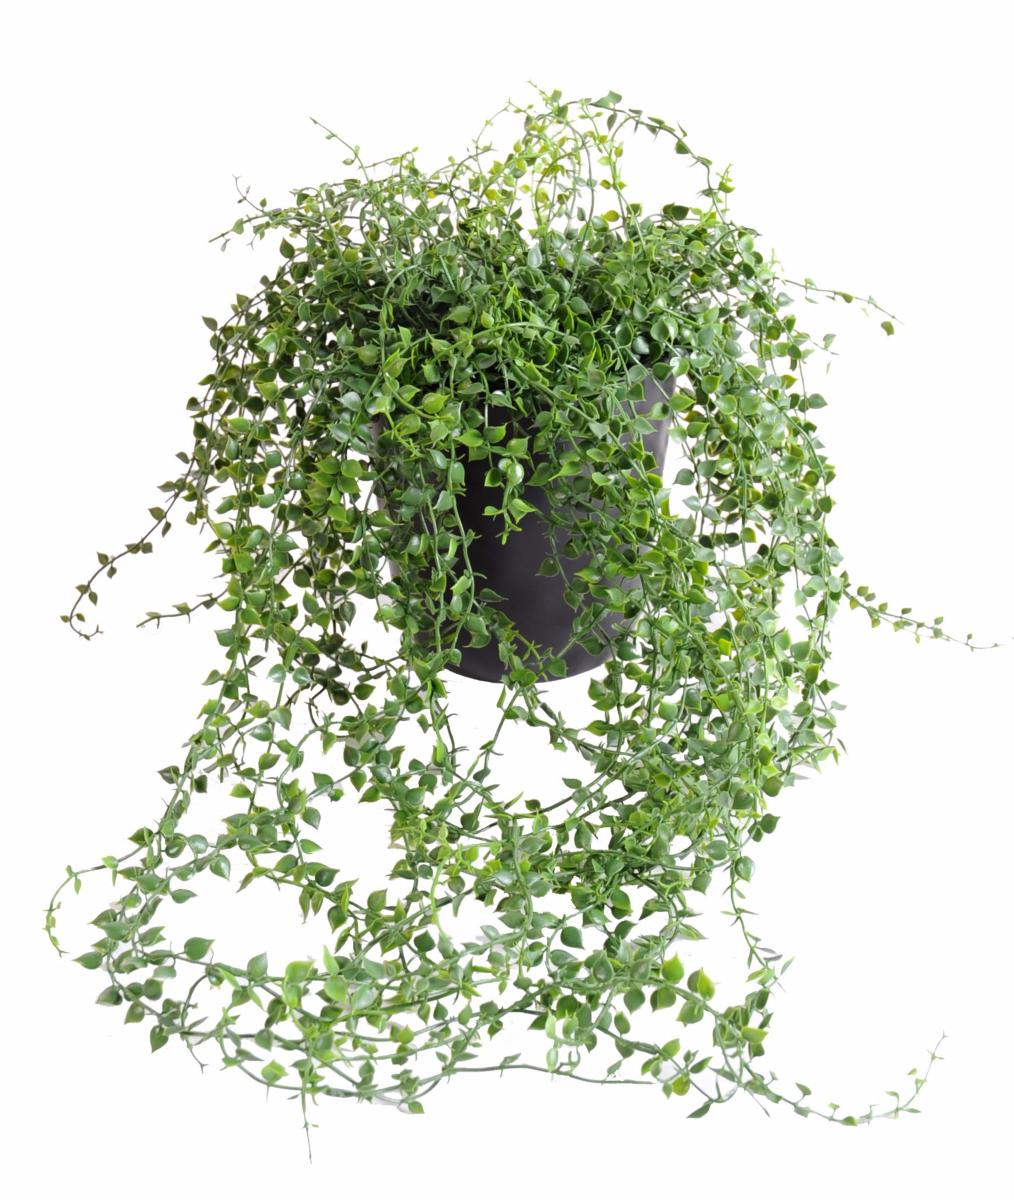 Plante artificielle callisia en pot interieur exterieur for Plante verte tombante